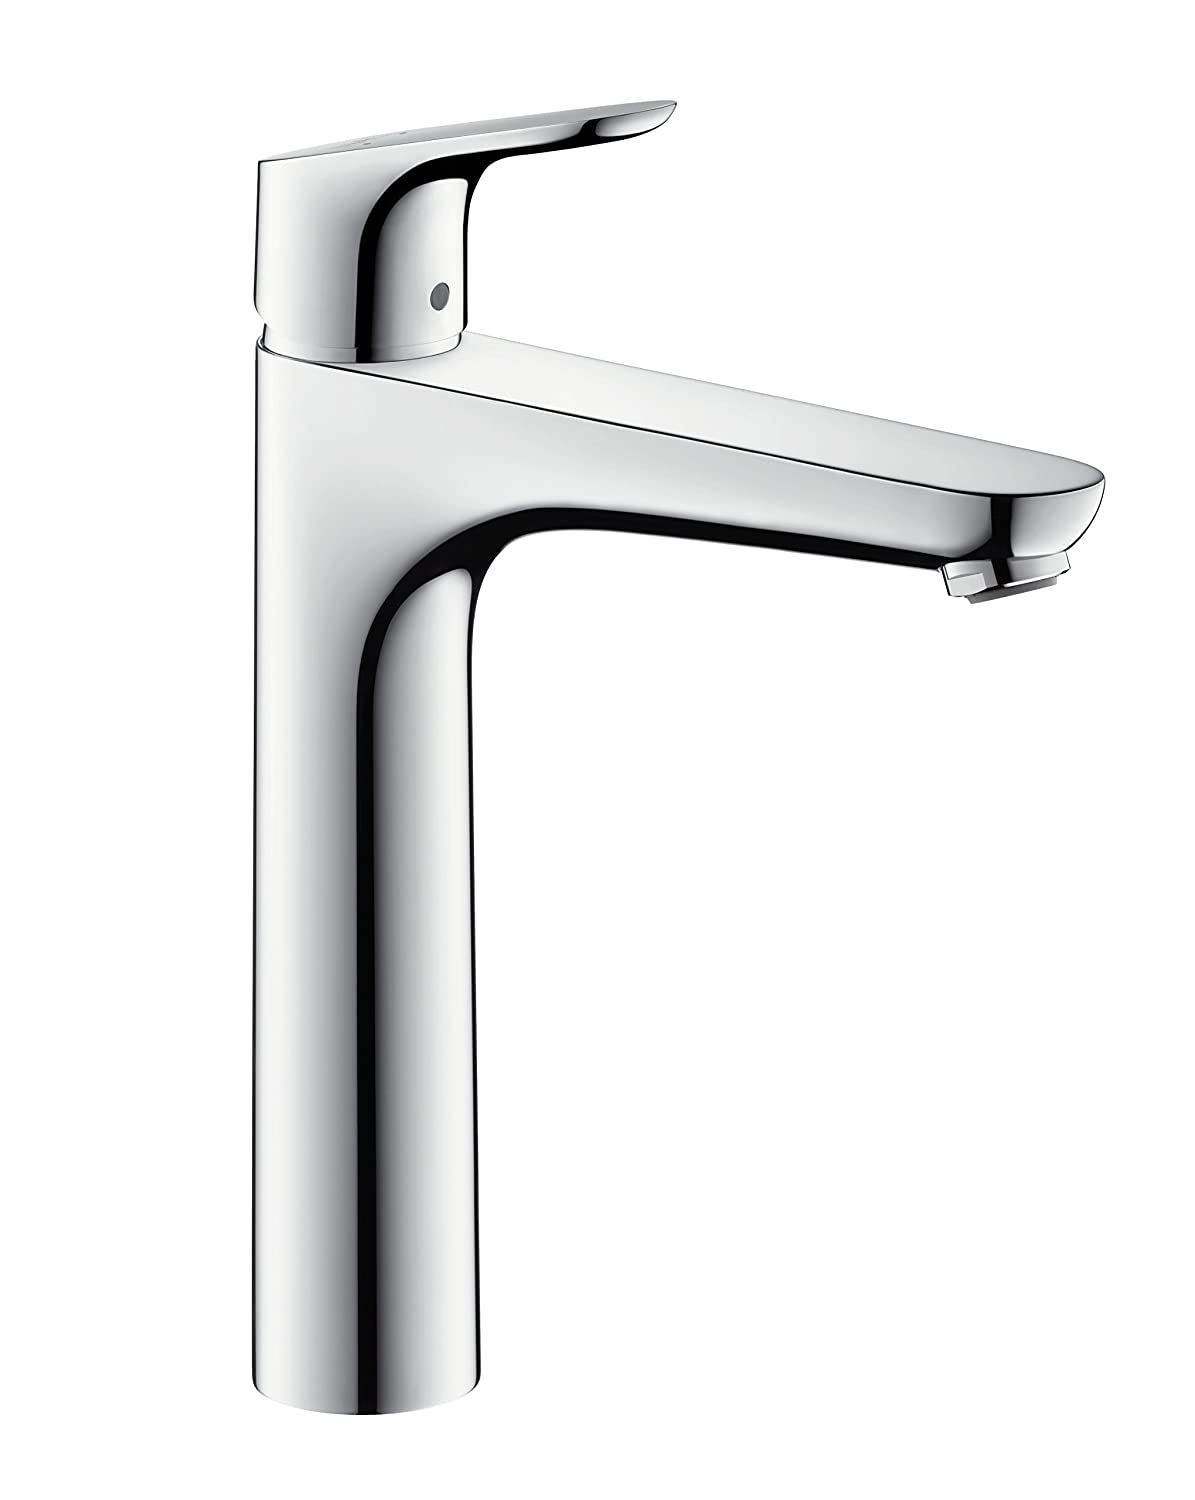 hansgrohe Focus basin mixer tap 190 with pop up waste, chrome ...